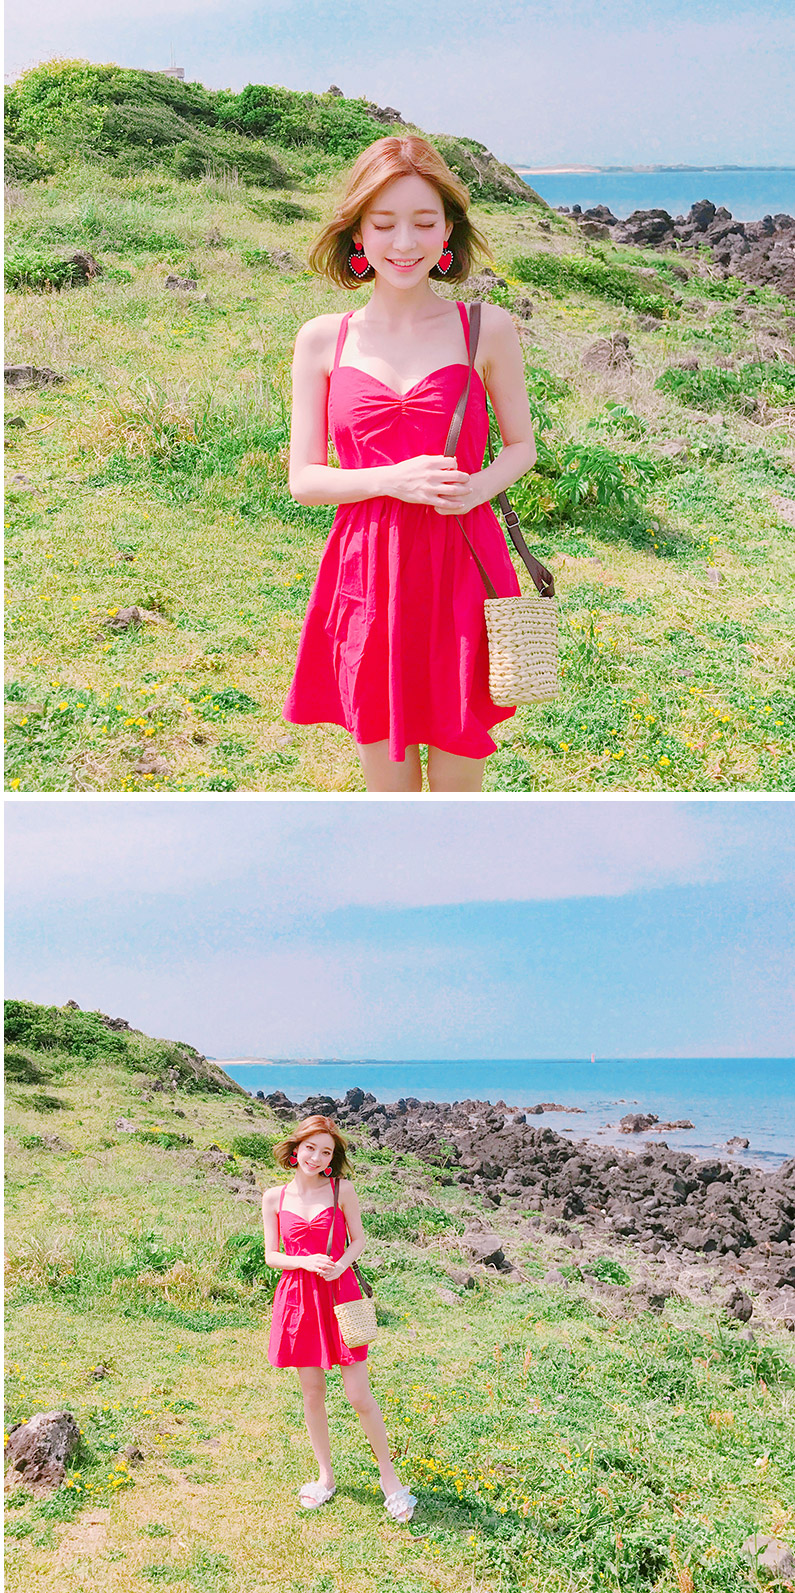 //cdn.nhanh.vn/cdn/store/29770/psCT/20180909/8968172/CHUU_Bright_Red_Lips_Mini_Dress_(1).jpg